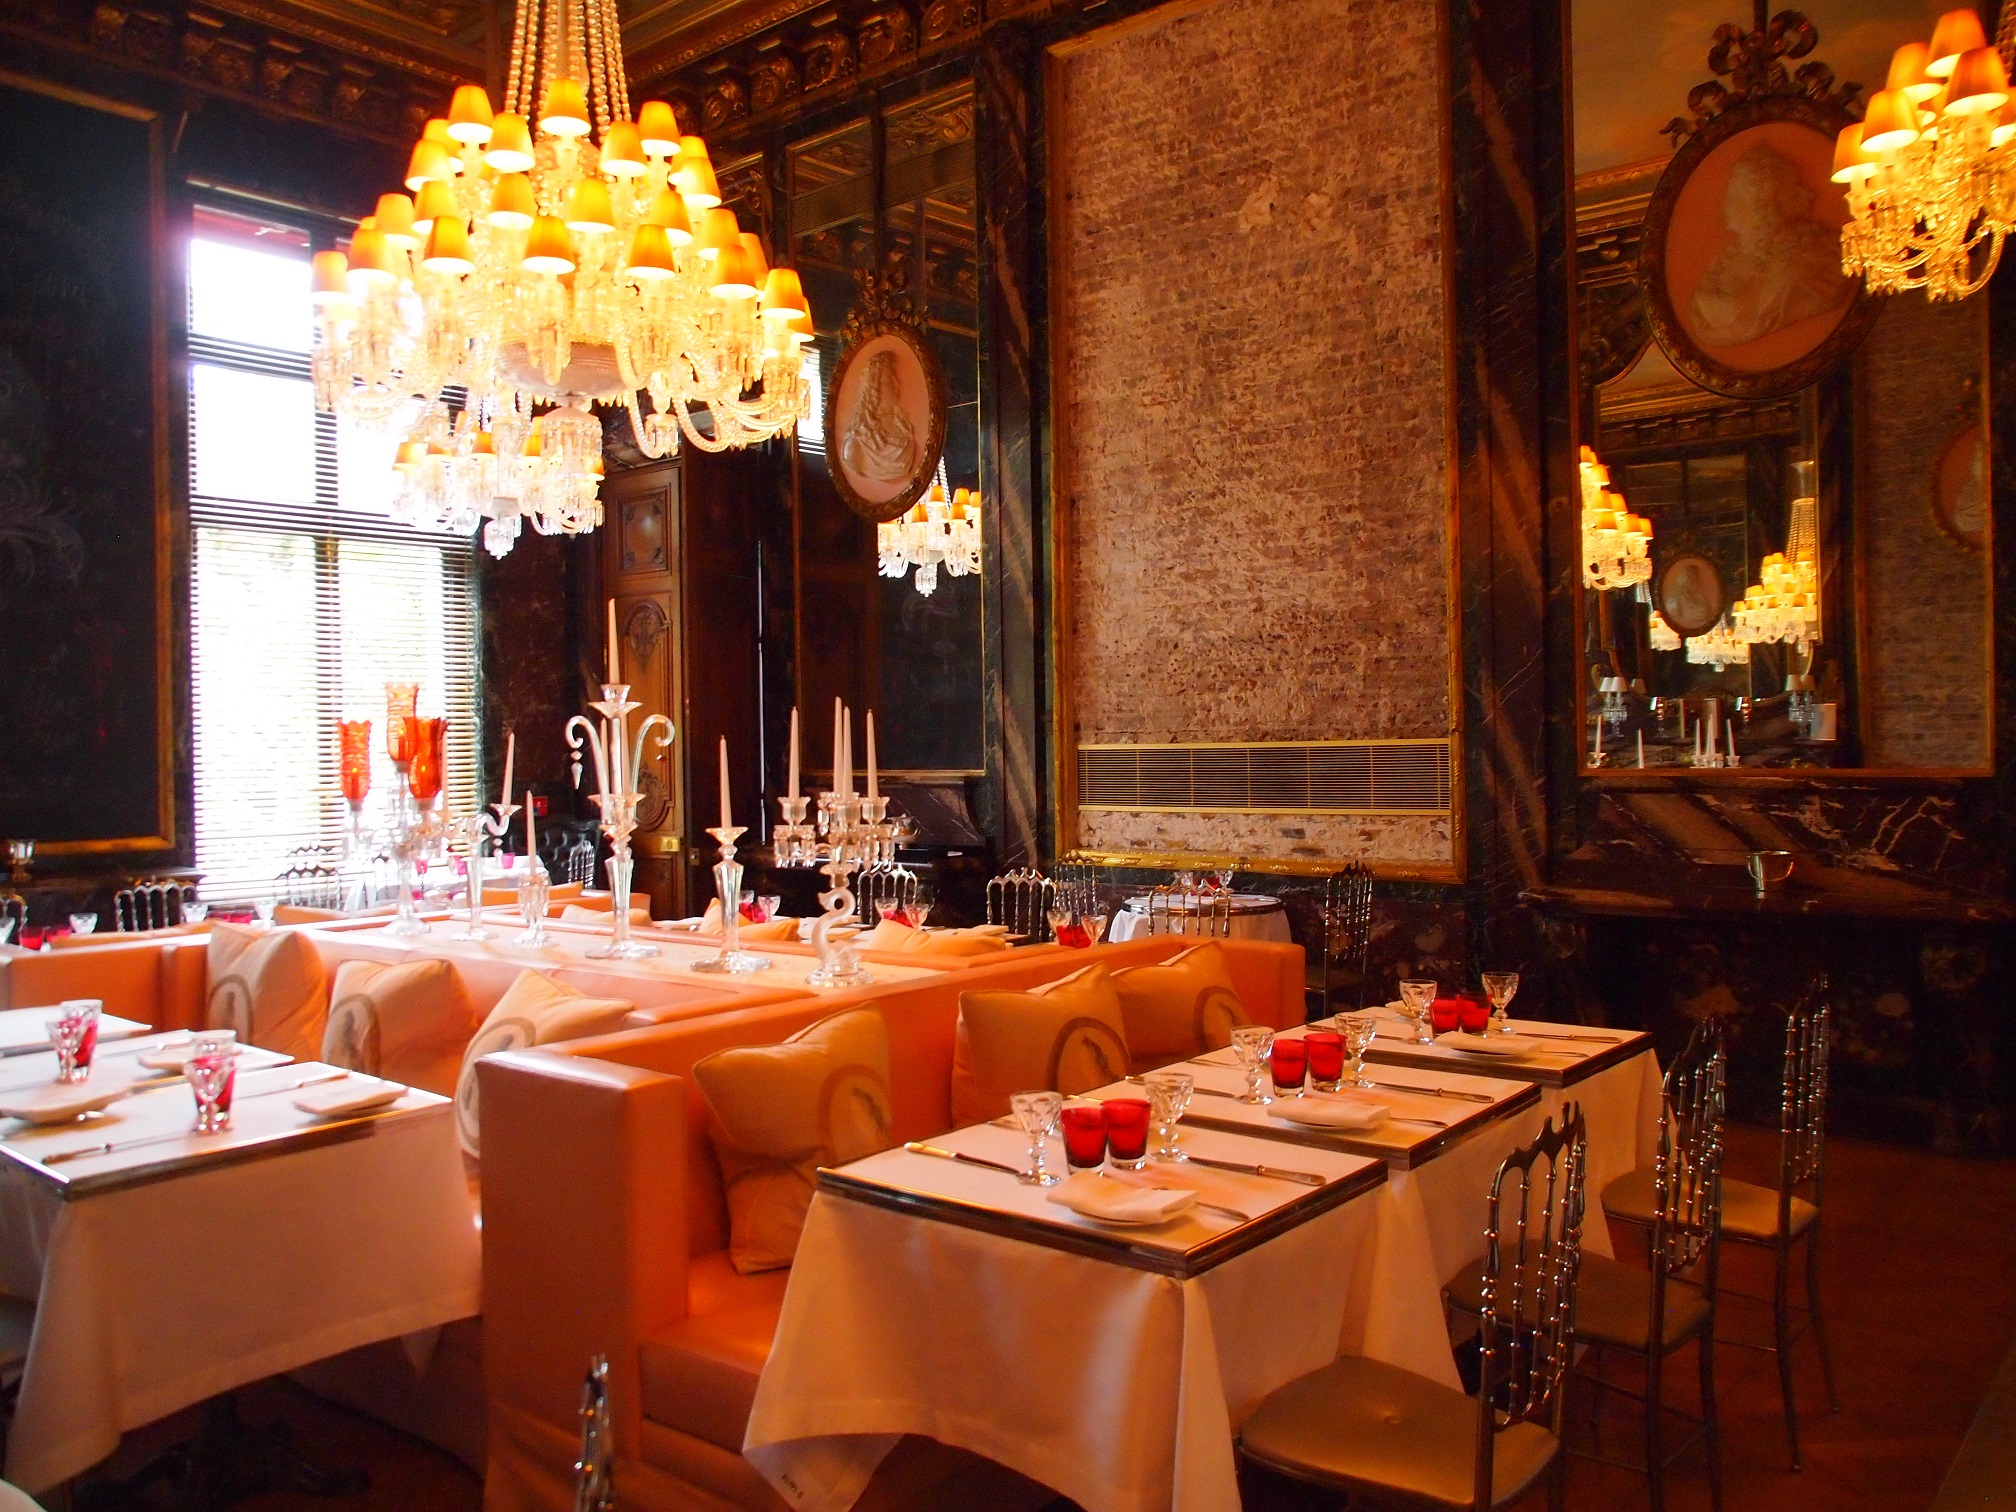 Dining at the cristal room baccarat museum in paris for Most beautiful dining rooms in paris